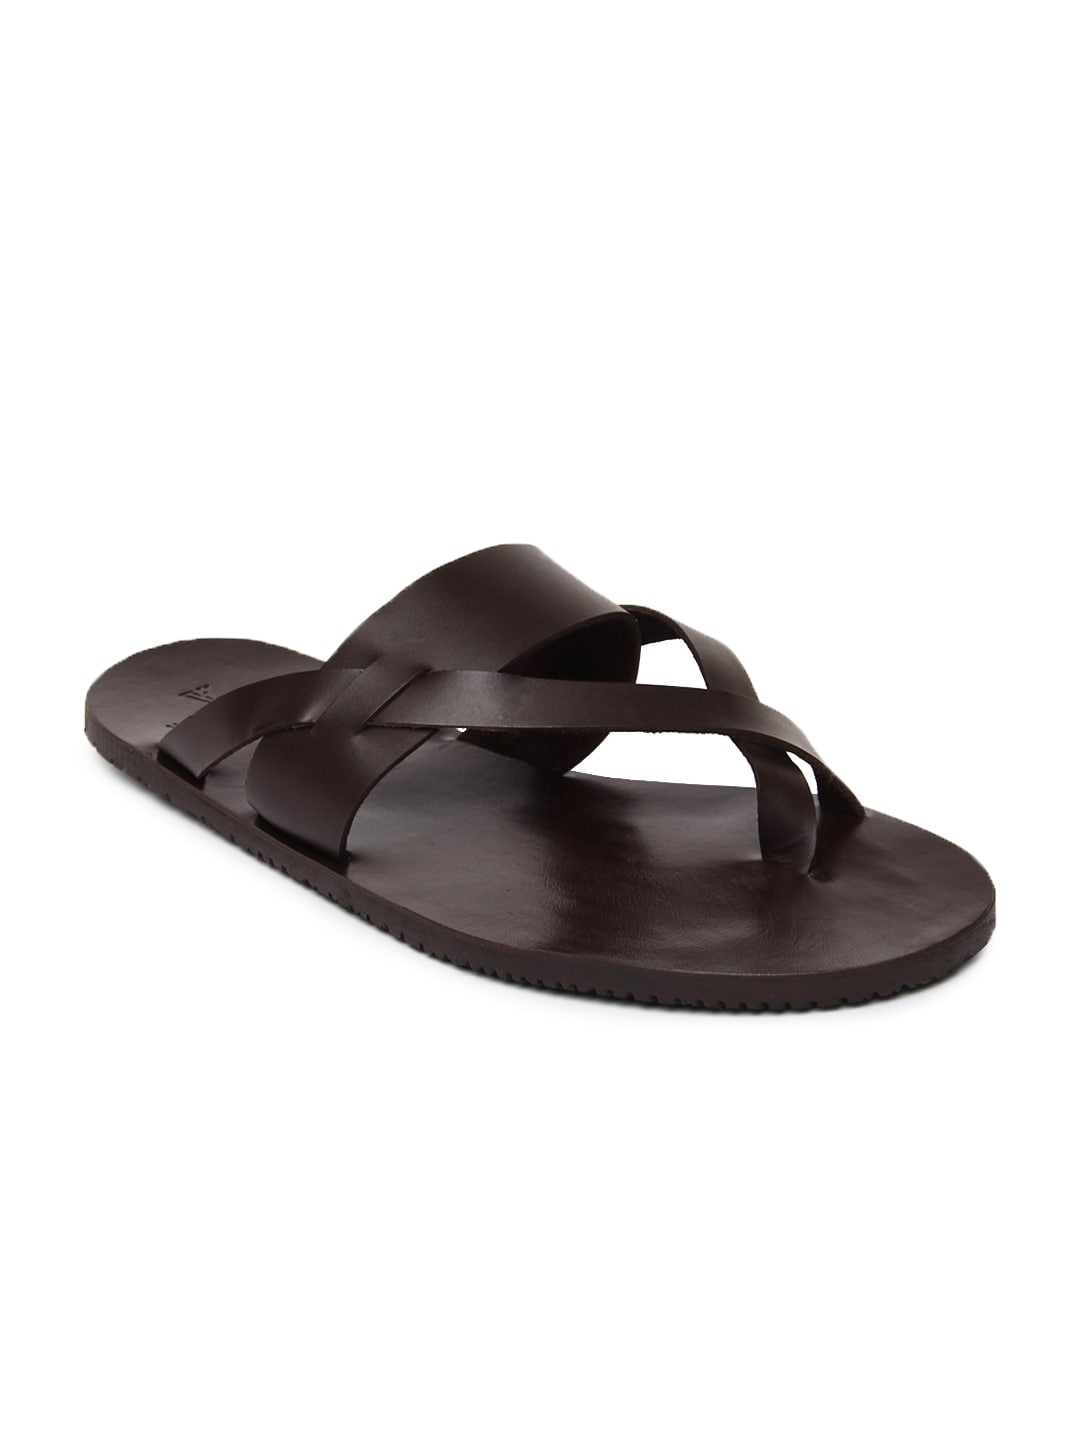 Van heusen vhmms00454 Van Huesen Men Brown Leather Sandals- Price in India 626ed906a